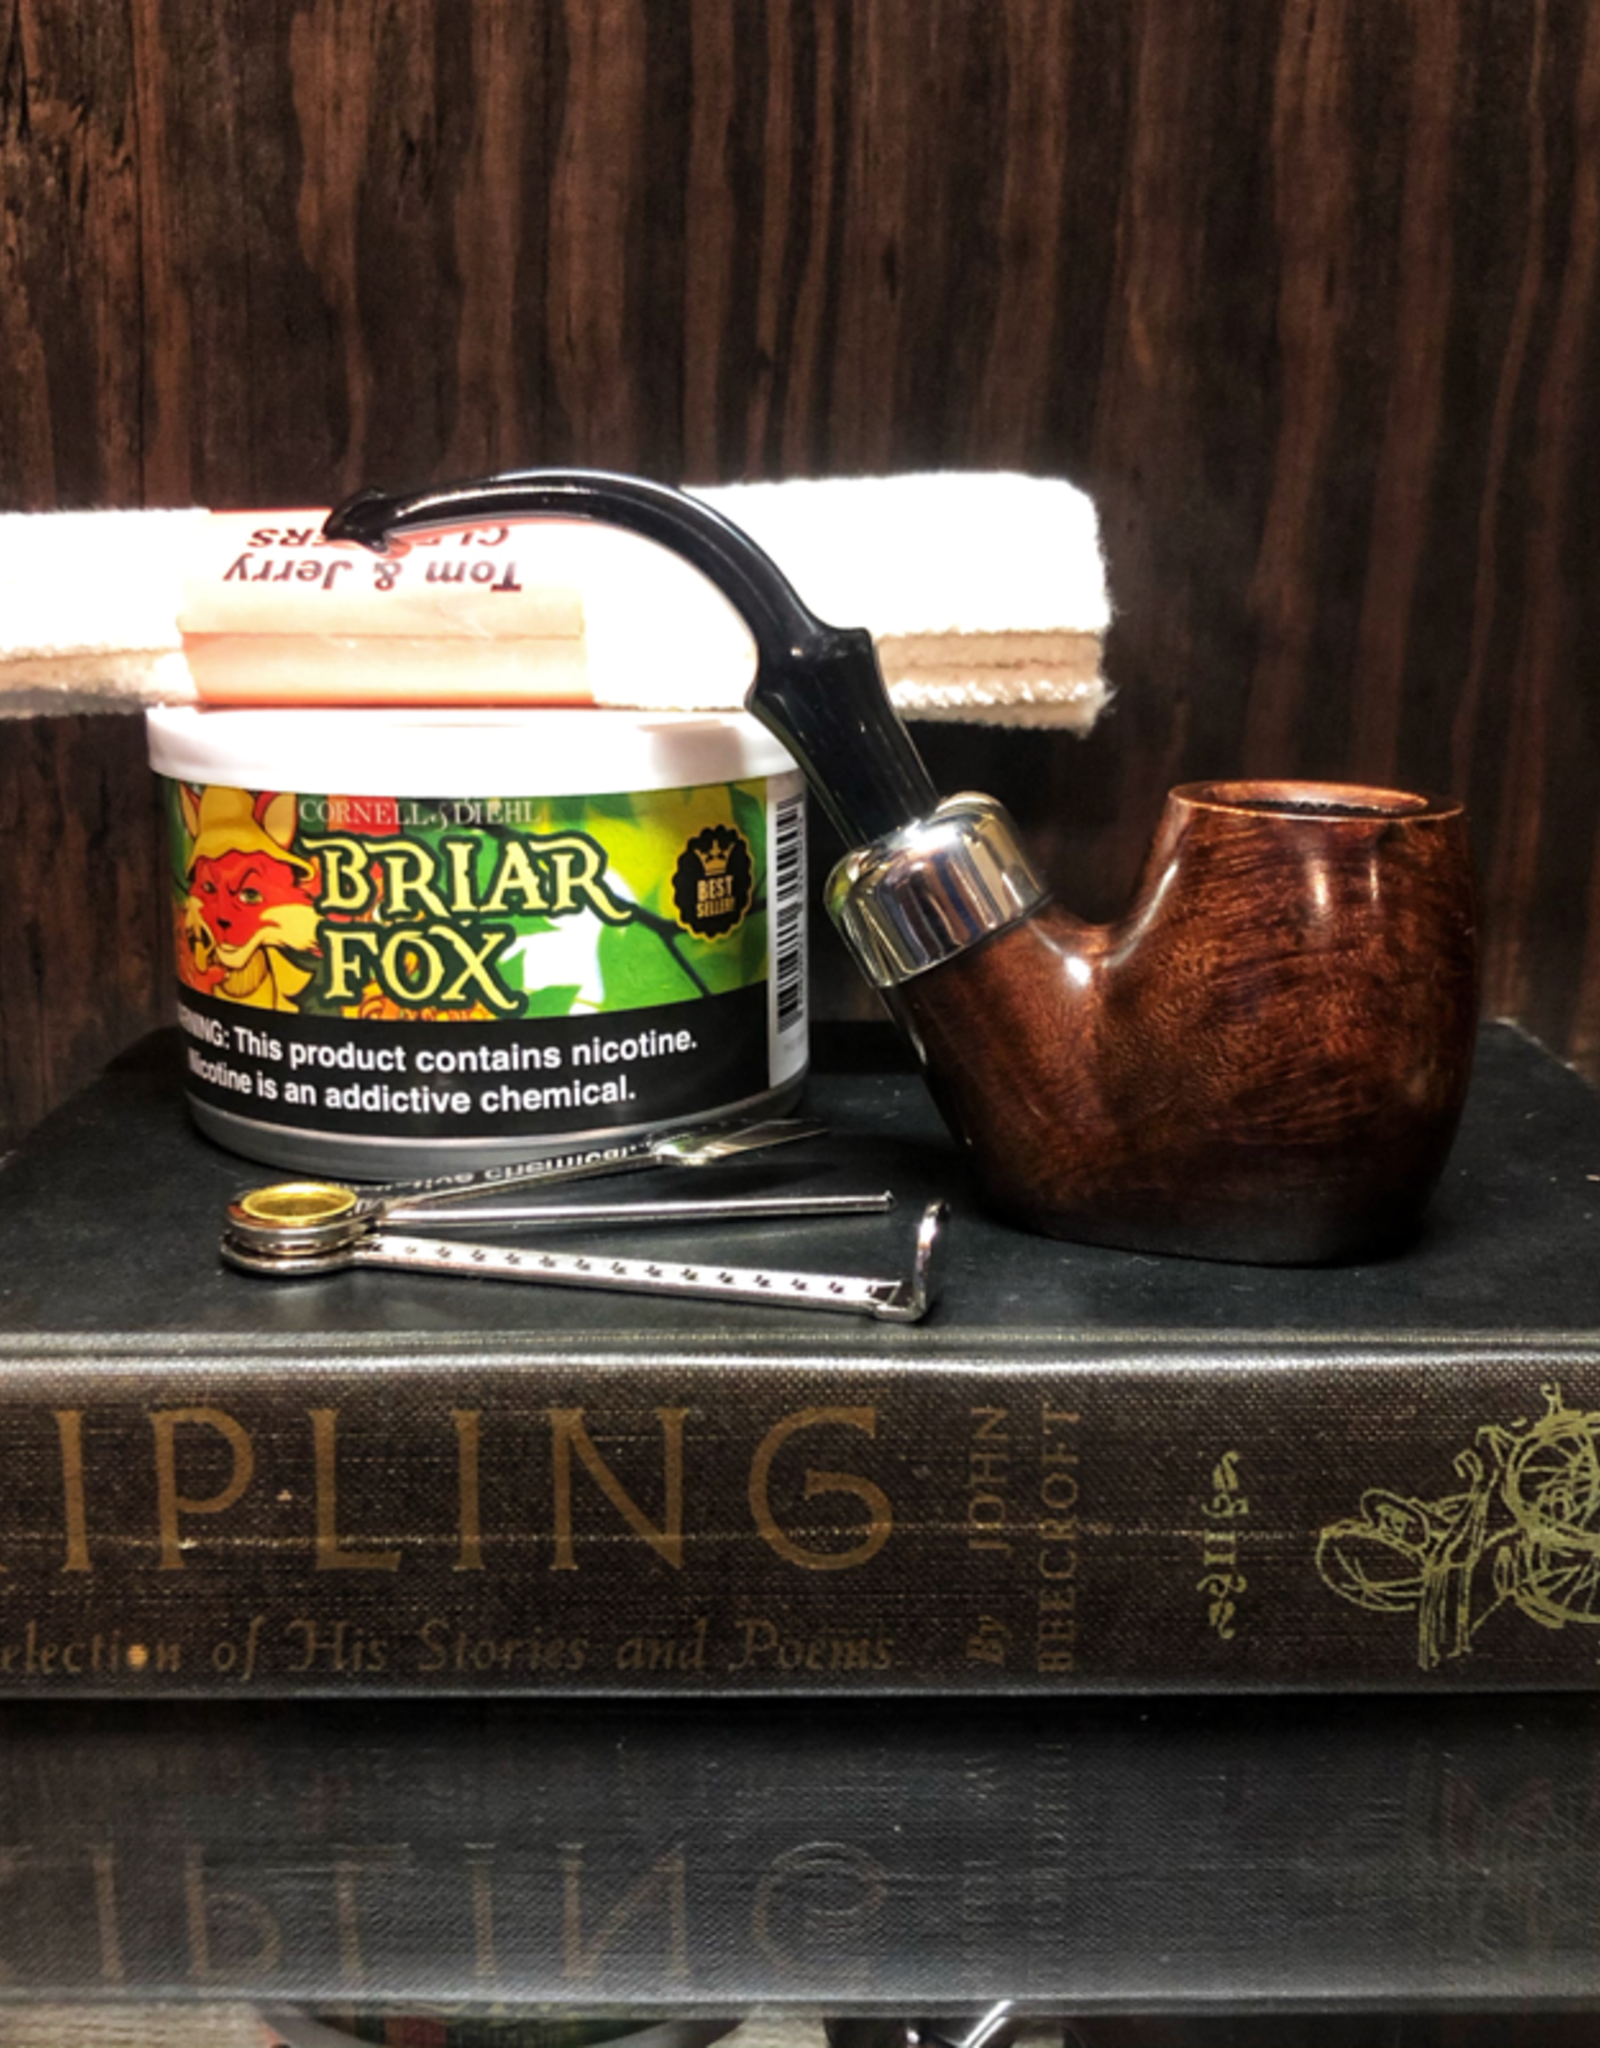 Cigar Art Briar Fox Pipe Kit with Peterson Pipe